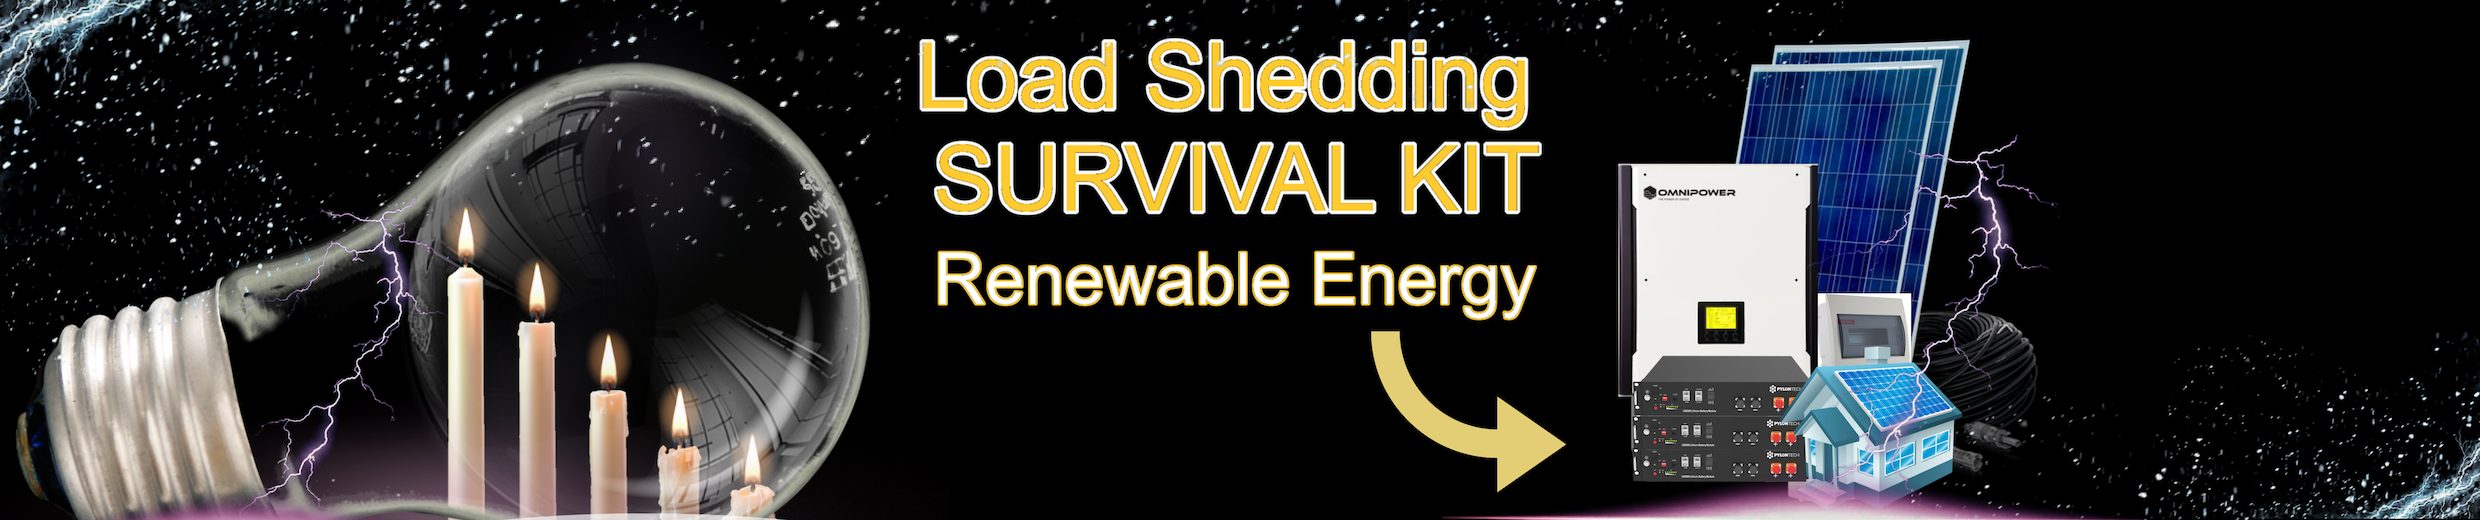 Eskom Load Shedding, home solar kits, candles, renewable energy, omnipower, survival kit, lightning strikes, light bulb, lithium batteries, cabling, distribution board